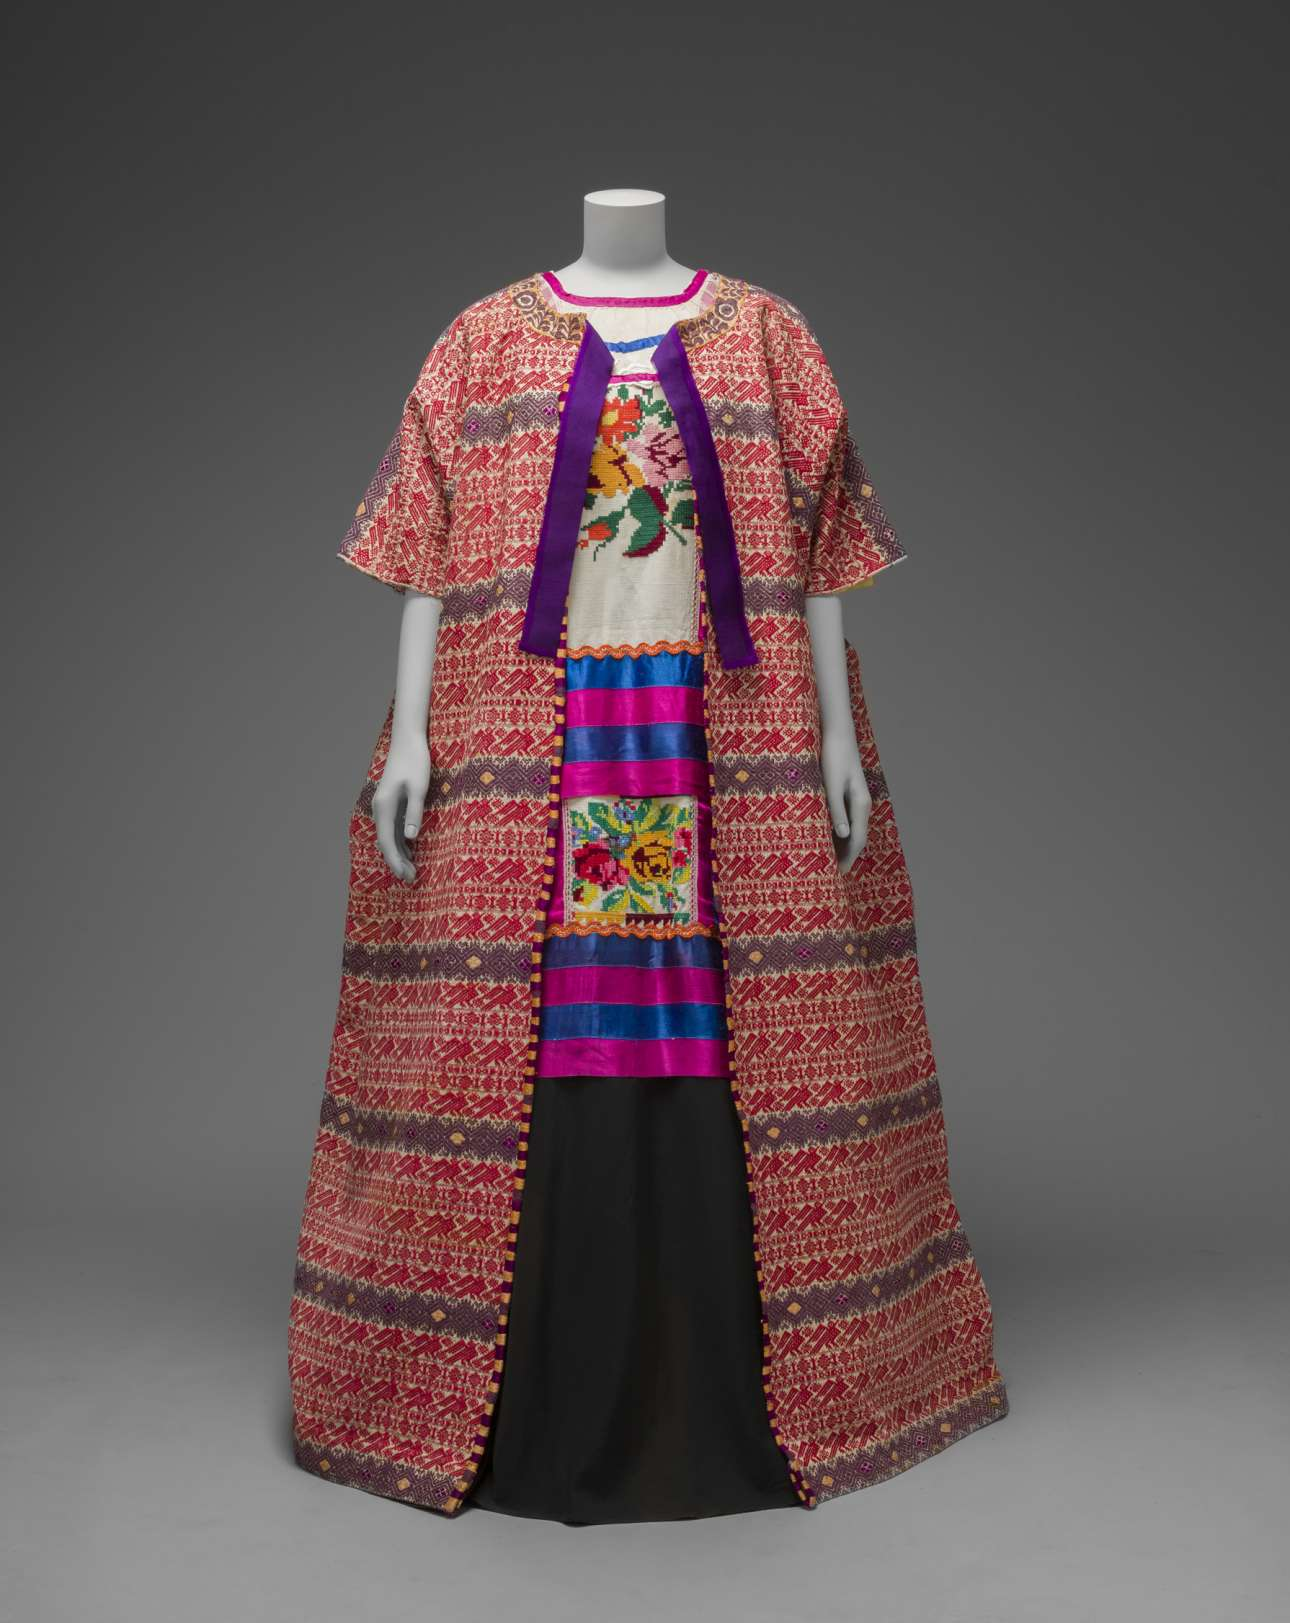 Guatemalan cottoncoat